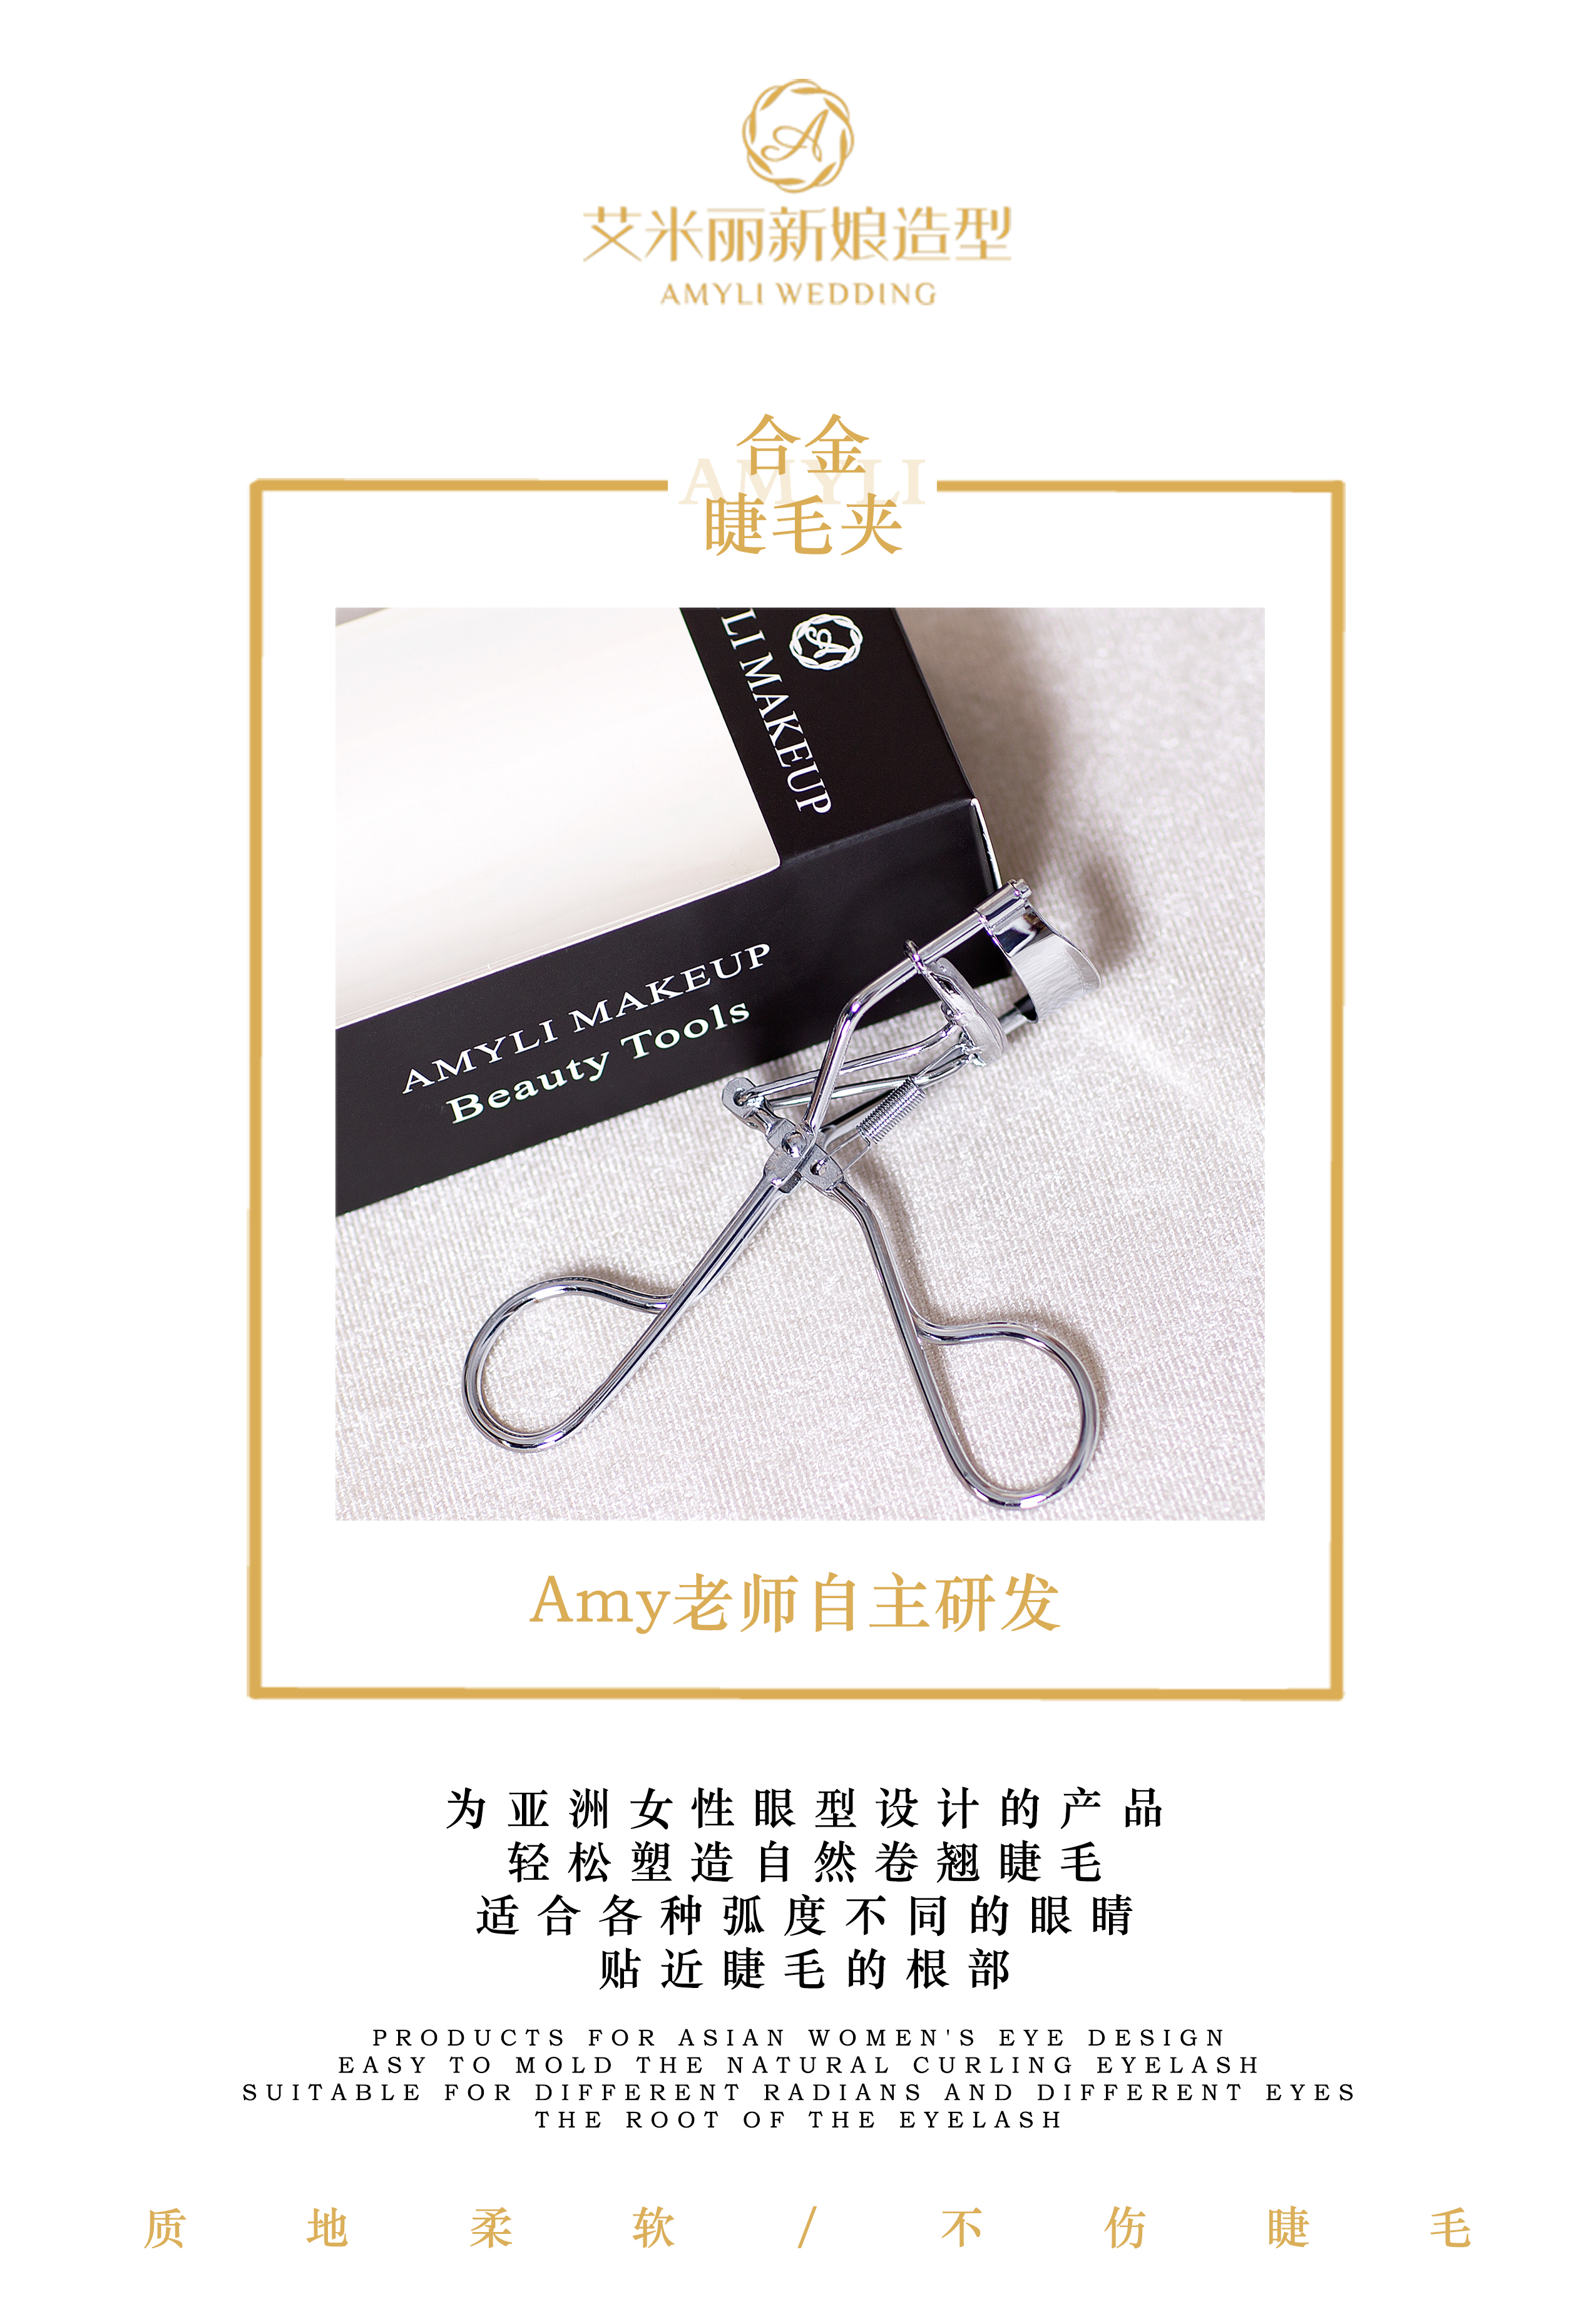 Amily eyelash clip Amy teacher developed curling and lasting eyelashes, soft texture with rubber pad